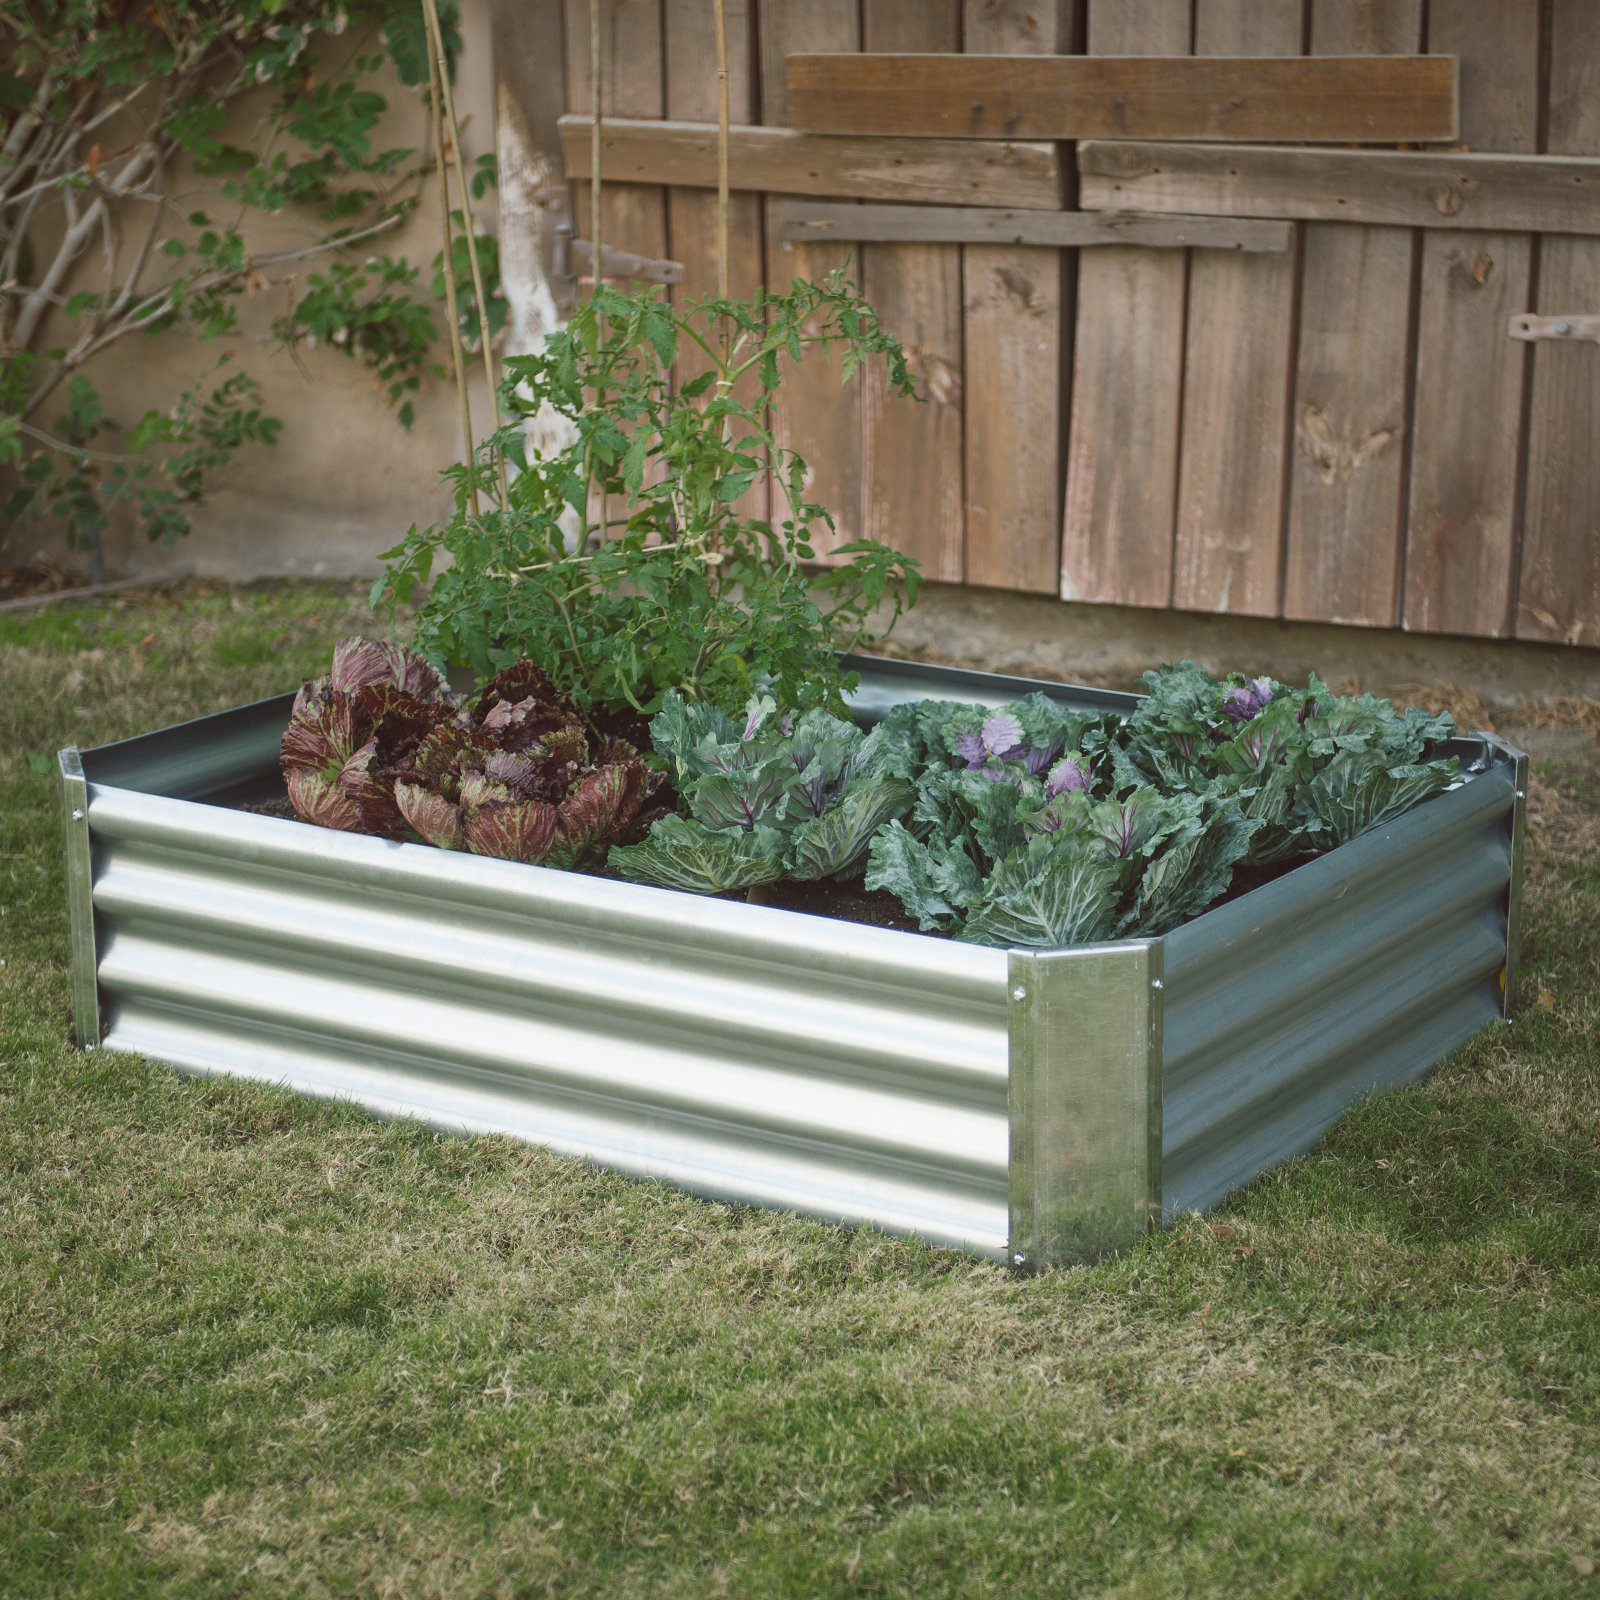 Belham Living Emery Corrugated Metal Raised Garden Bed with Lining - 47L x 35D x 12H